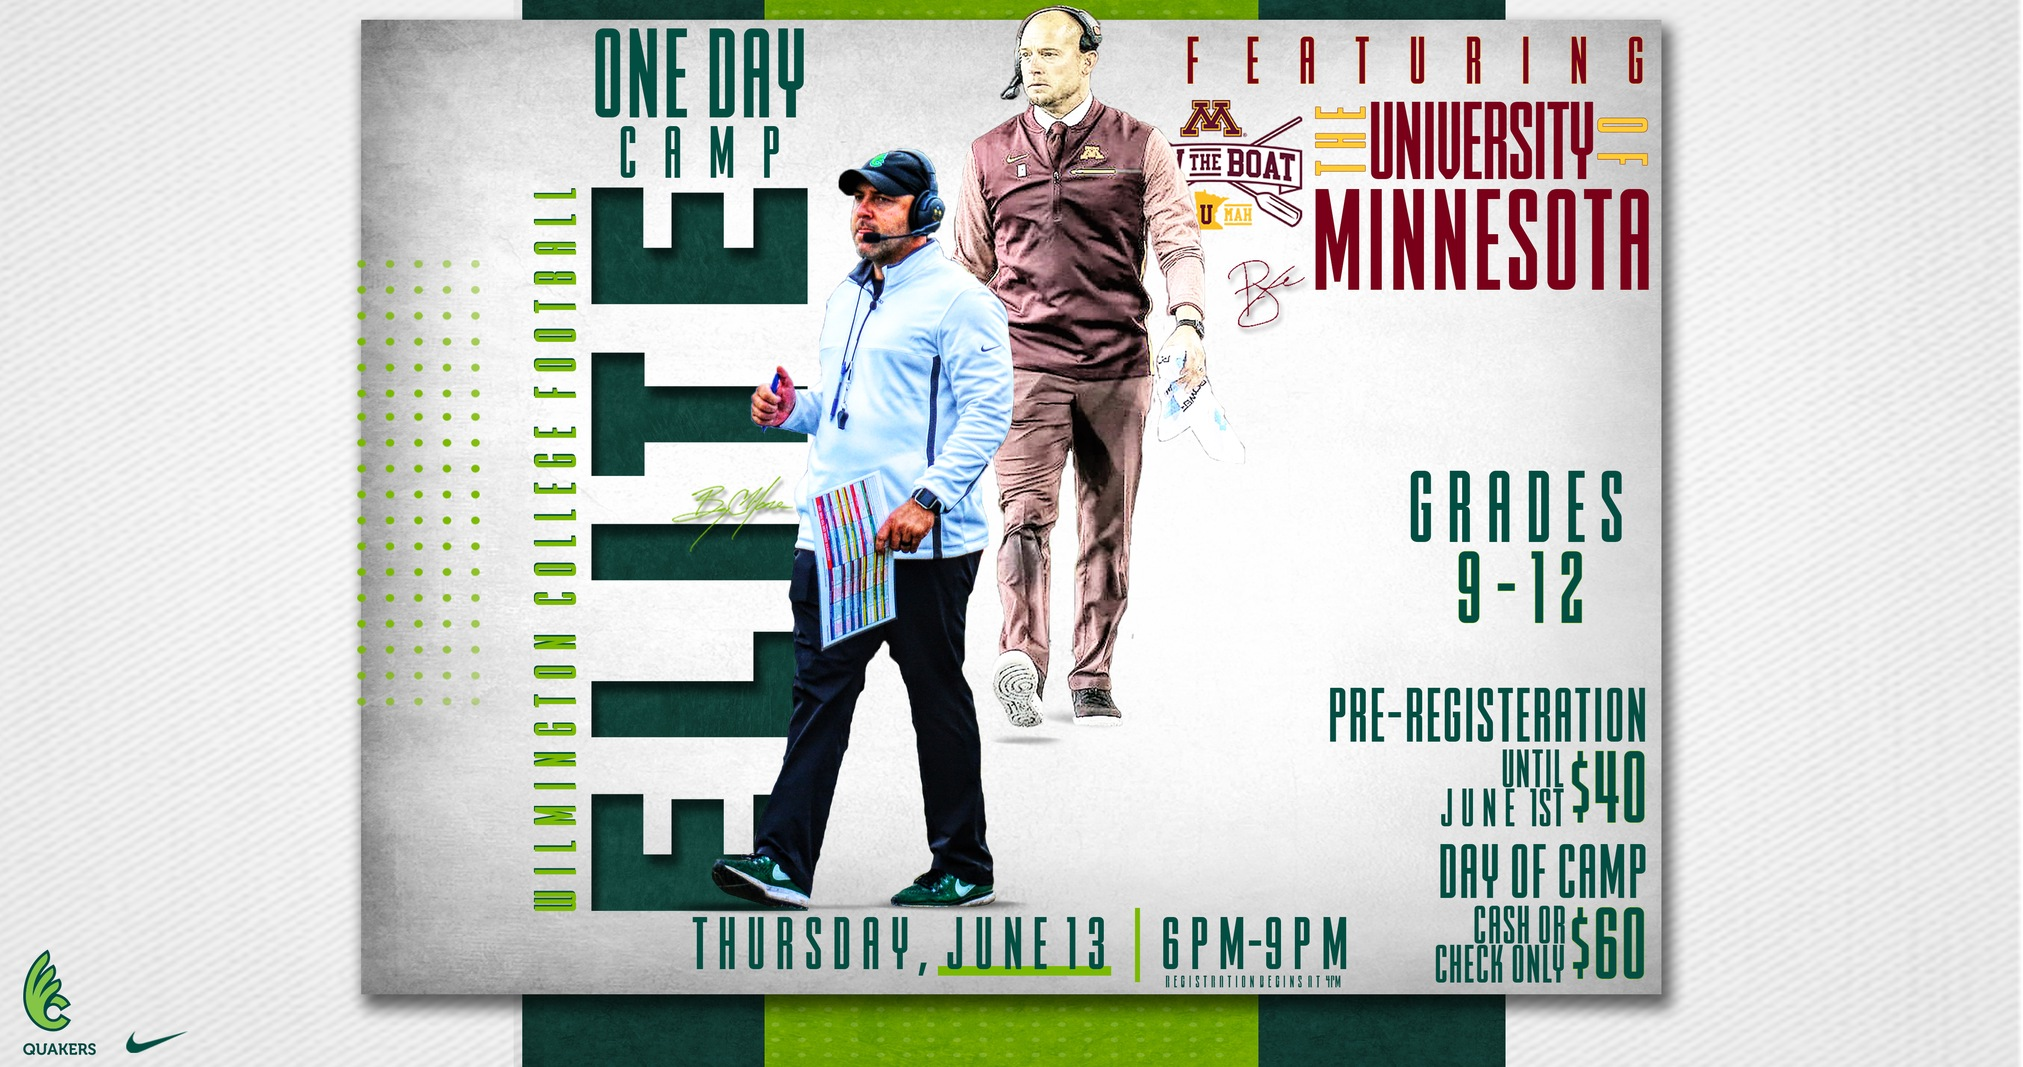 Football Hosting One-Day Elite Camp Featuring Minnesota for Second Consecutive Year